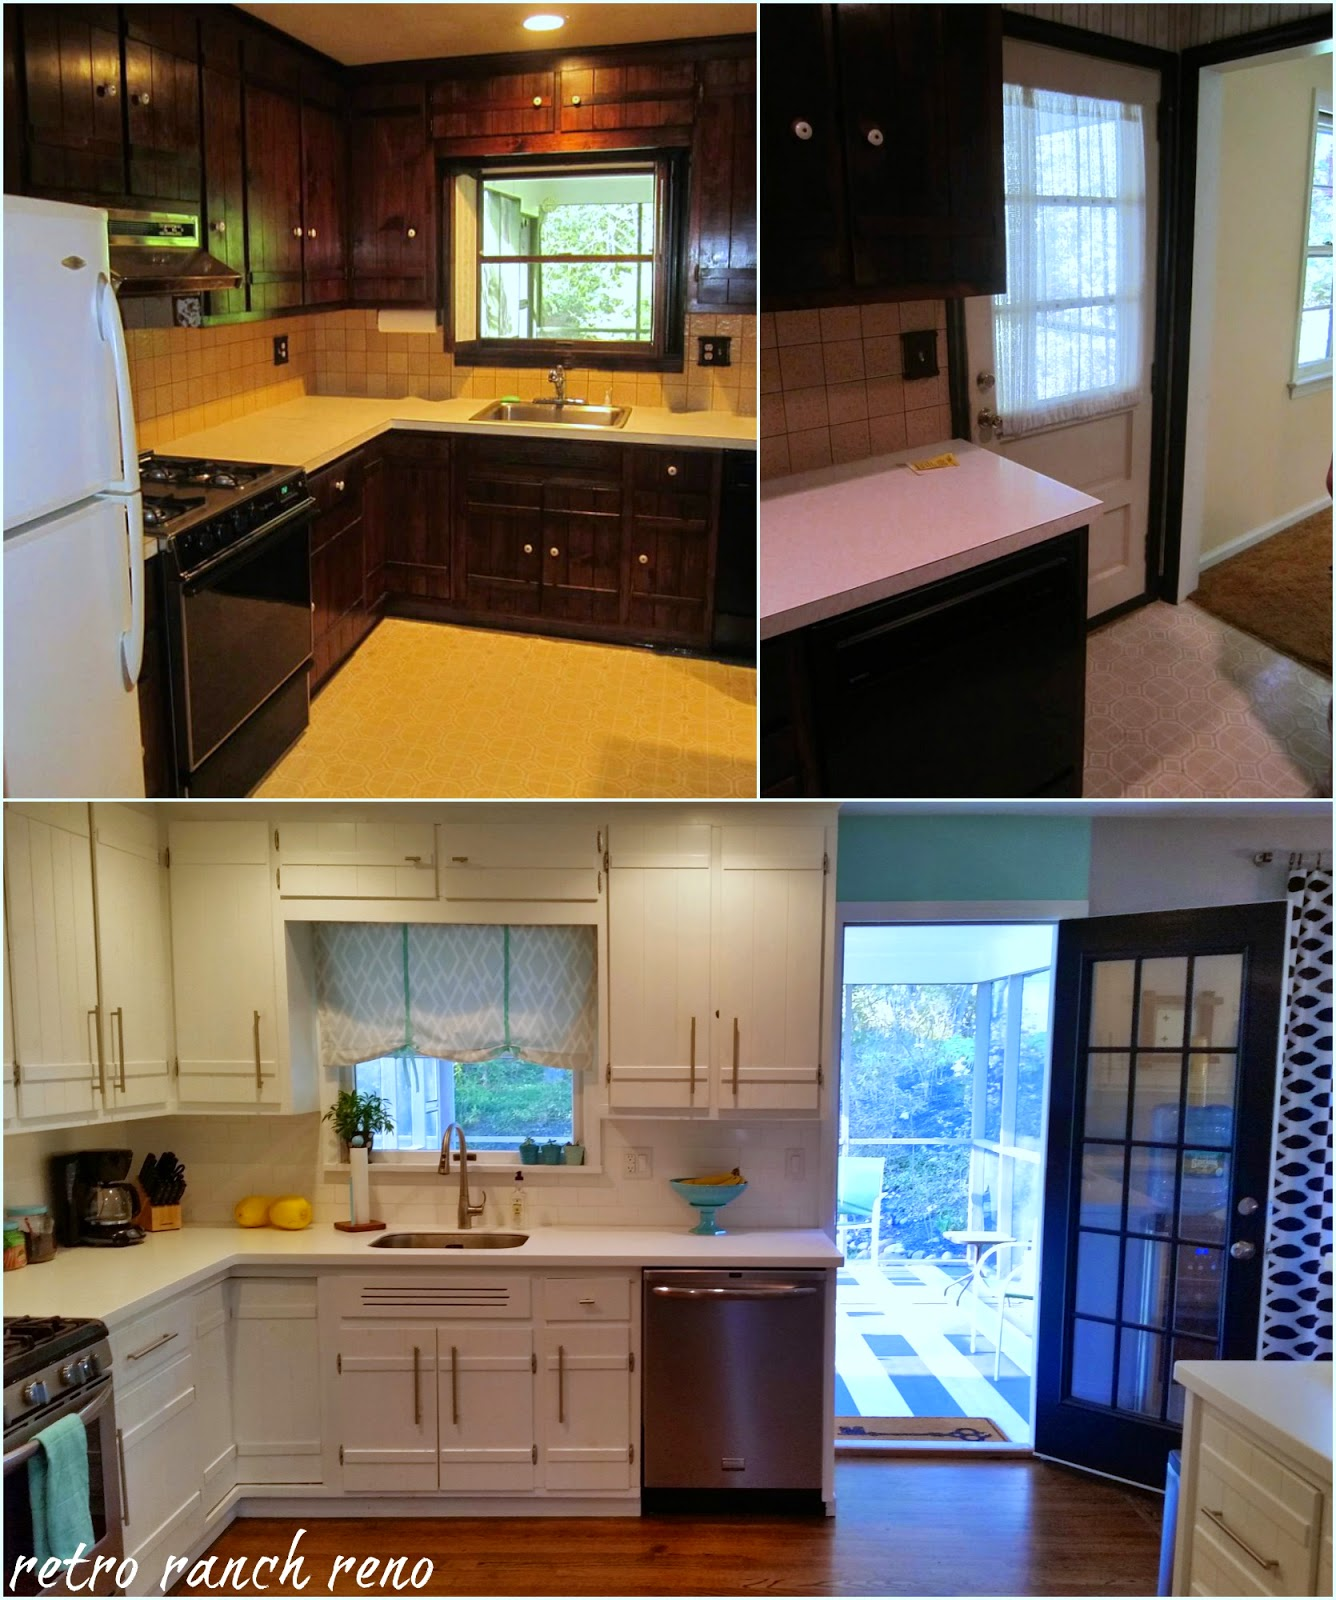 Kitchen Renovation Dos And Don Ts: Retro Ranch Reno: Our Rancher: Before & After